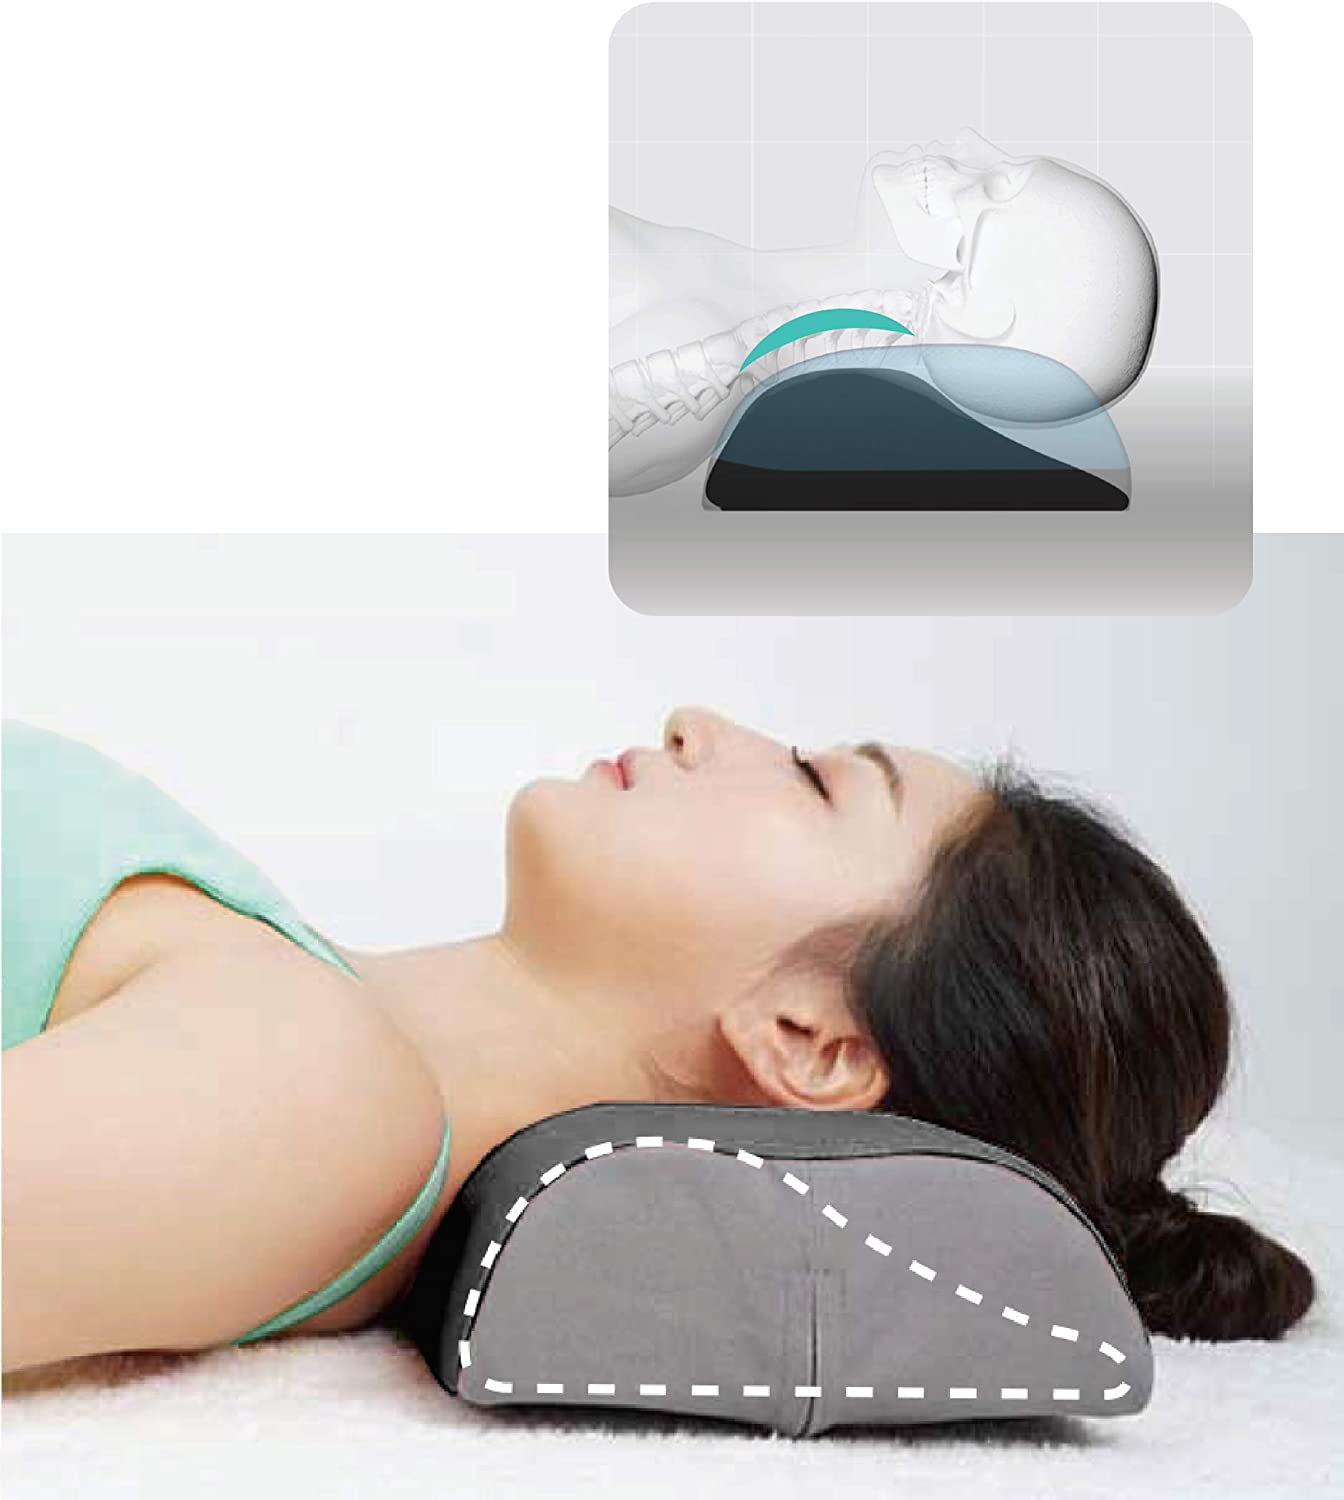 SNPE Neck Support Pillow (Blue) - Neck Pain Relief and Cervical Correction. Chiropractic Hard Memory Form.